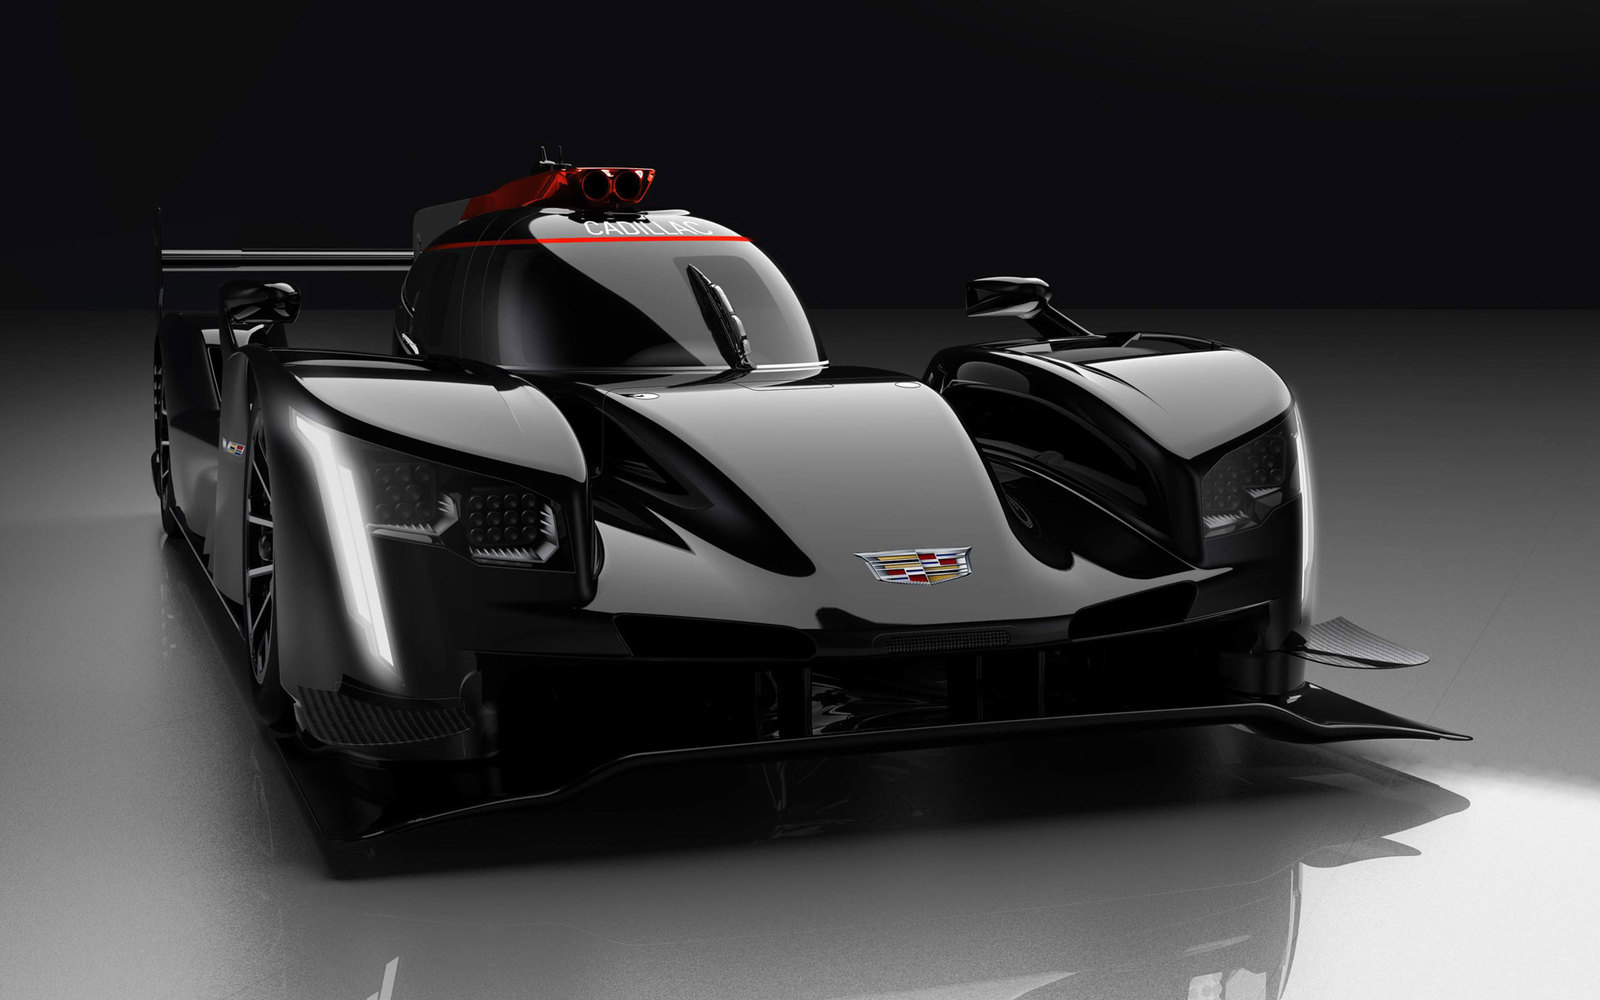 Cadillac DPi-VR Race Car